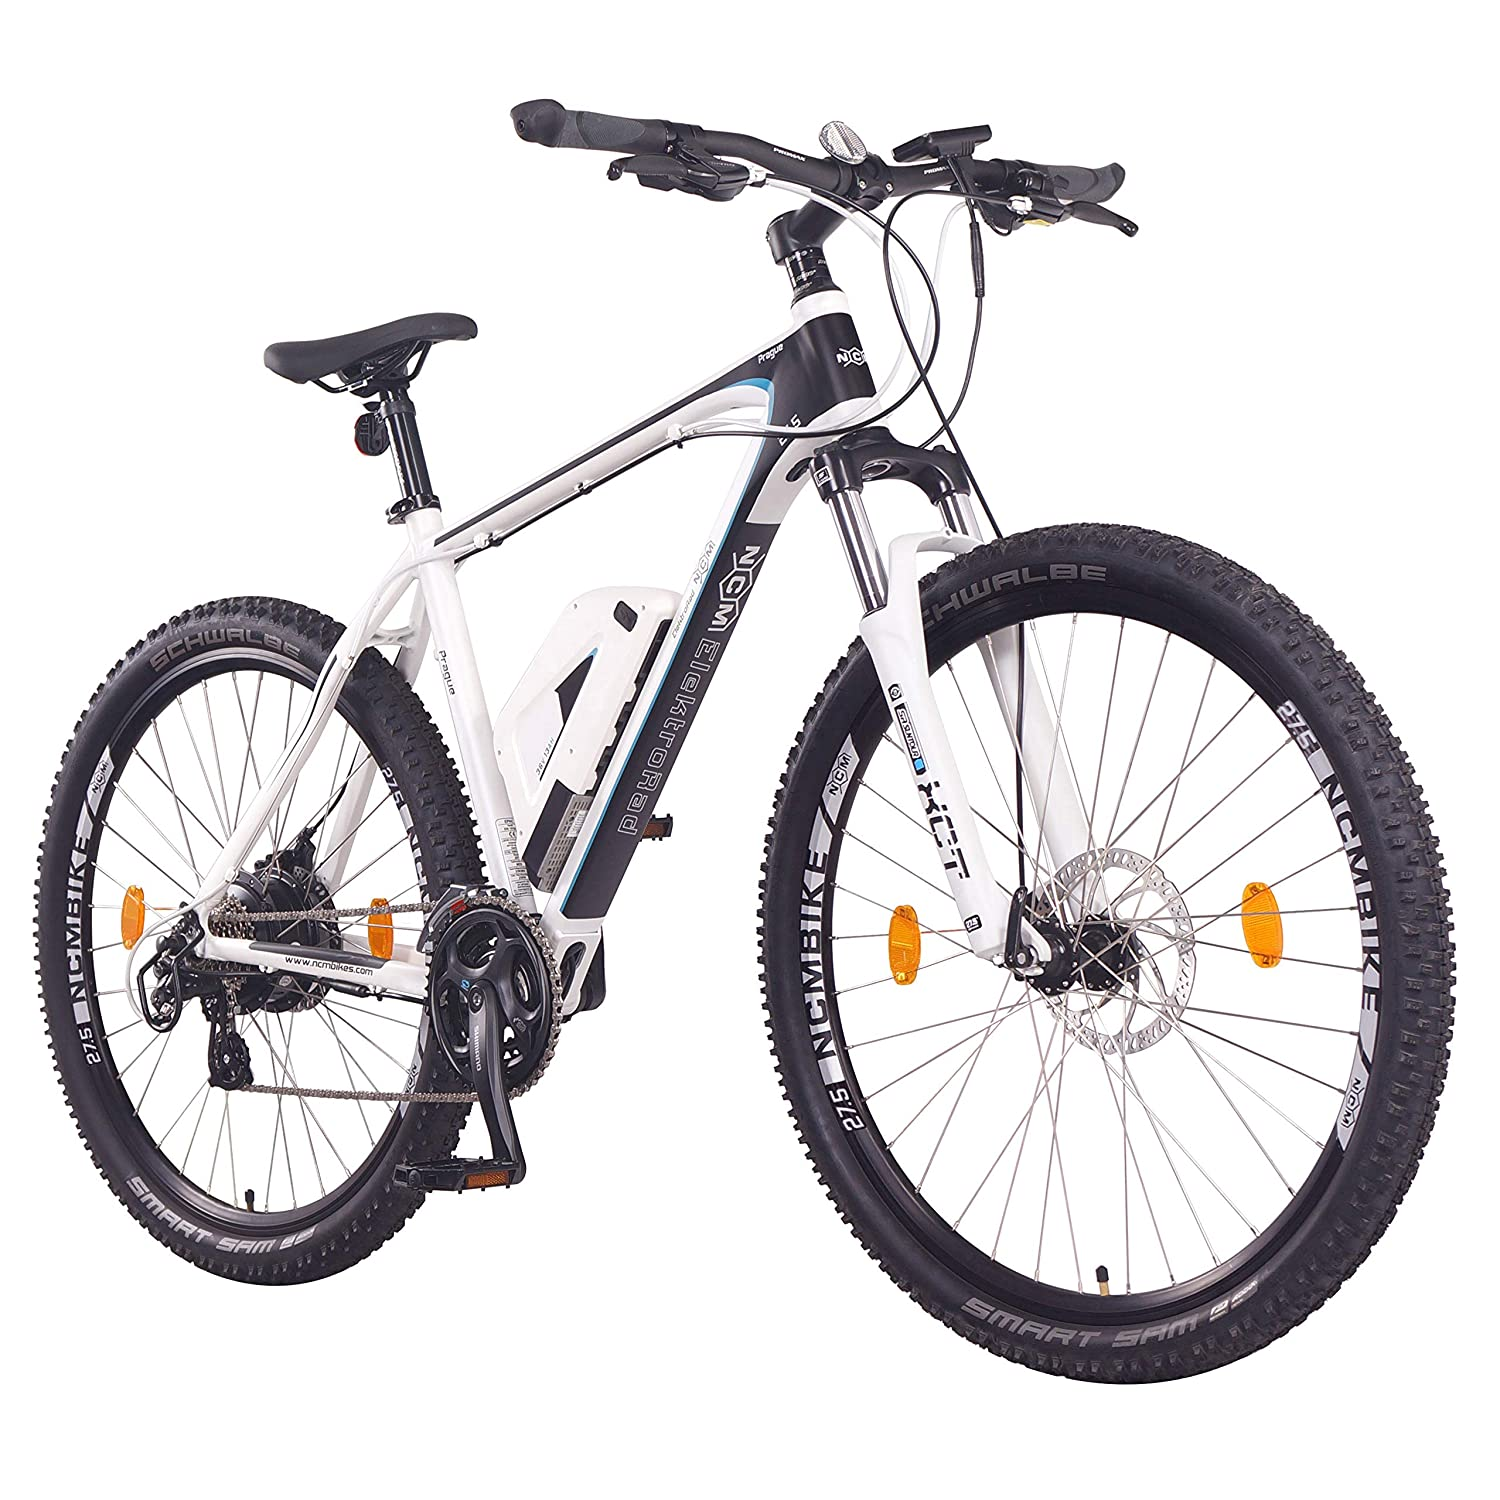 Ncm Prague E Bike Mountainbike 250w 36v 13ah 468wh Li Ion Akku 26